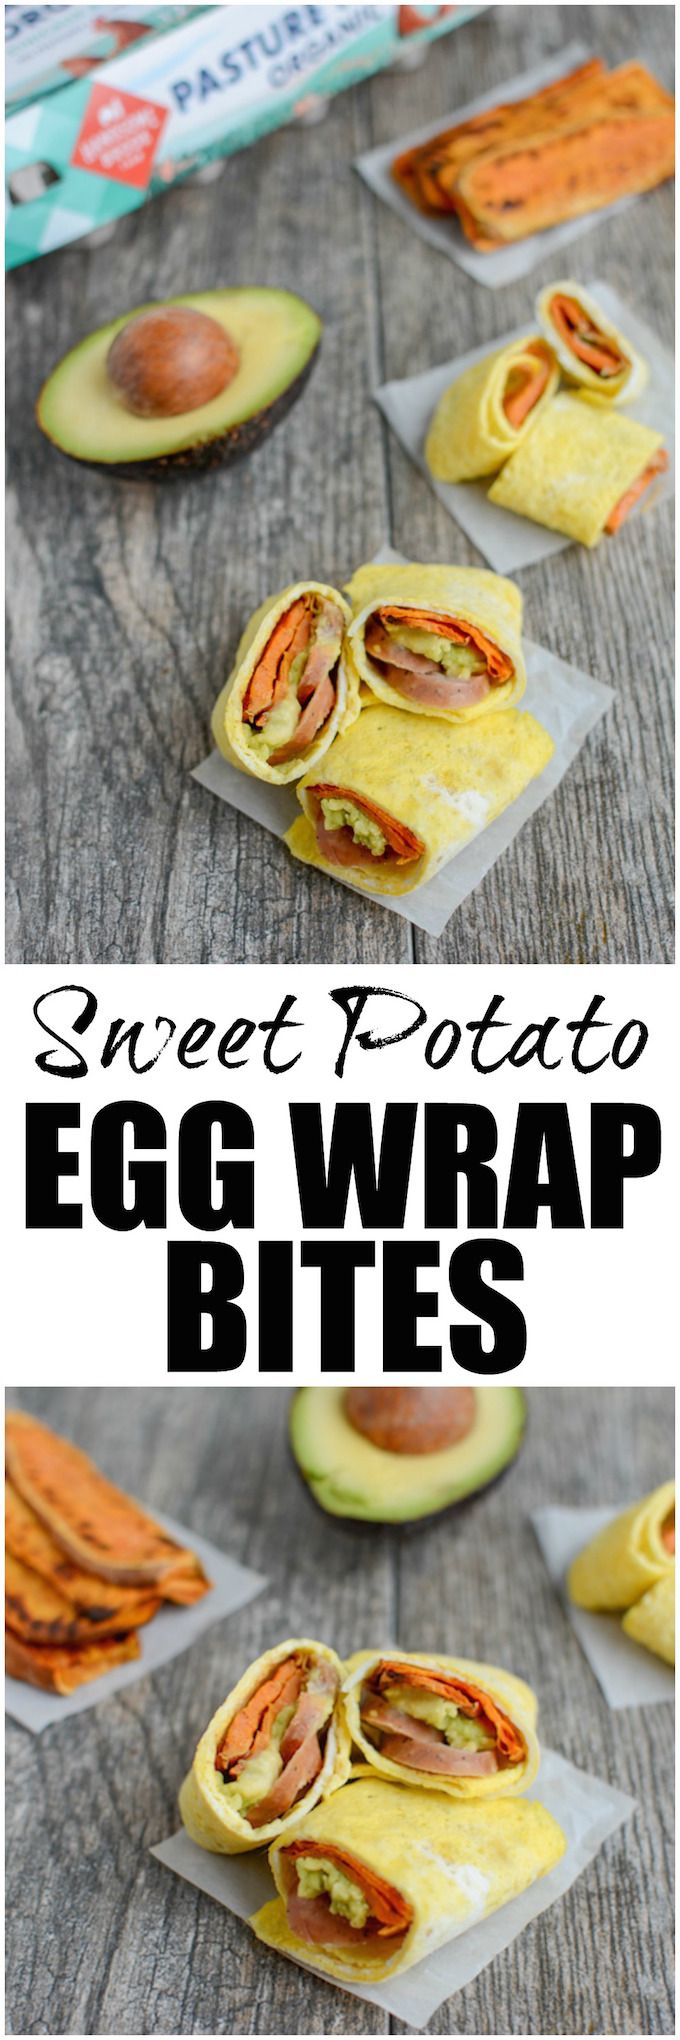 These Sweet Potato Egg Wrap Bites make an easy, healthy breakfast, lunch or snack. They're kid-friendly and can be prepped ahead of time so they come together quickly! (AD) @handsomebrook